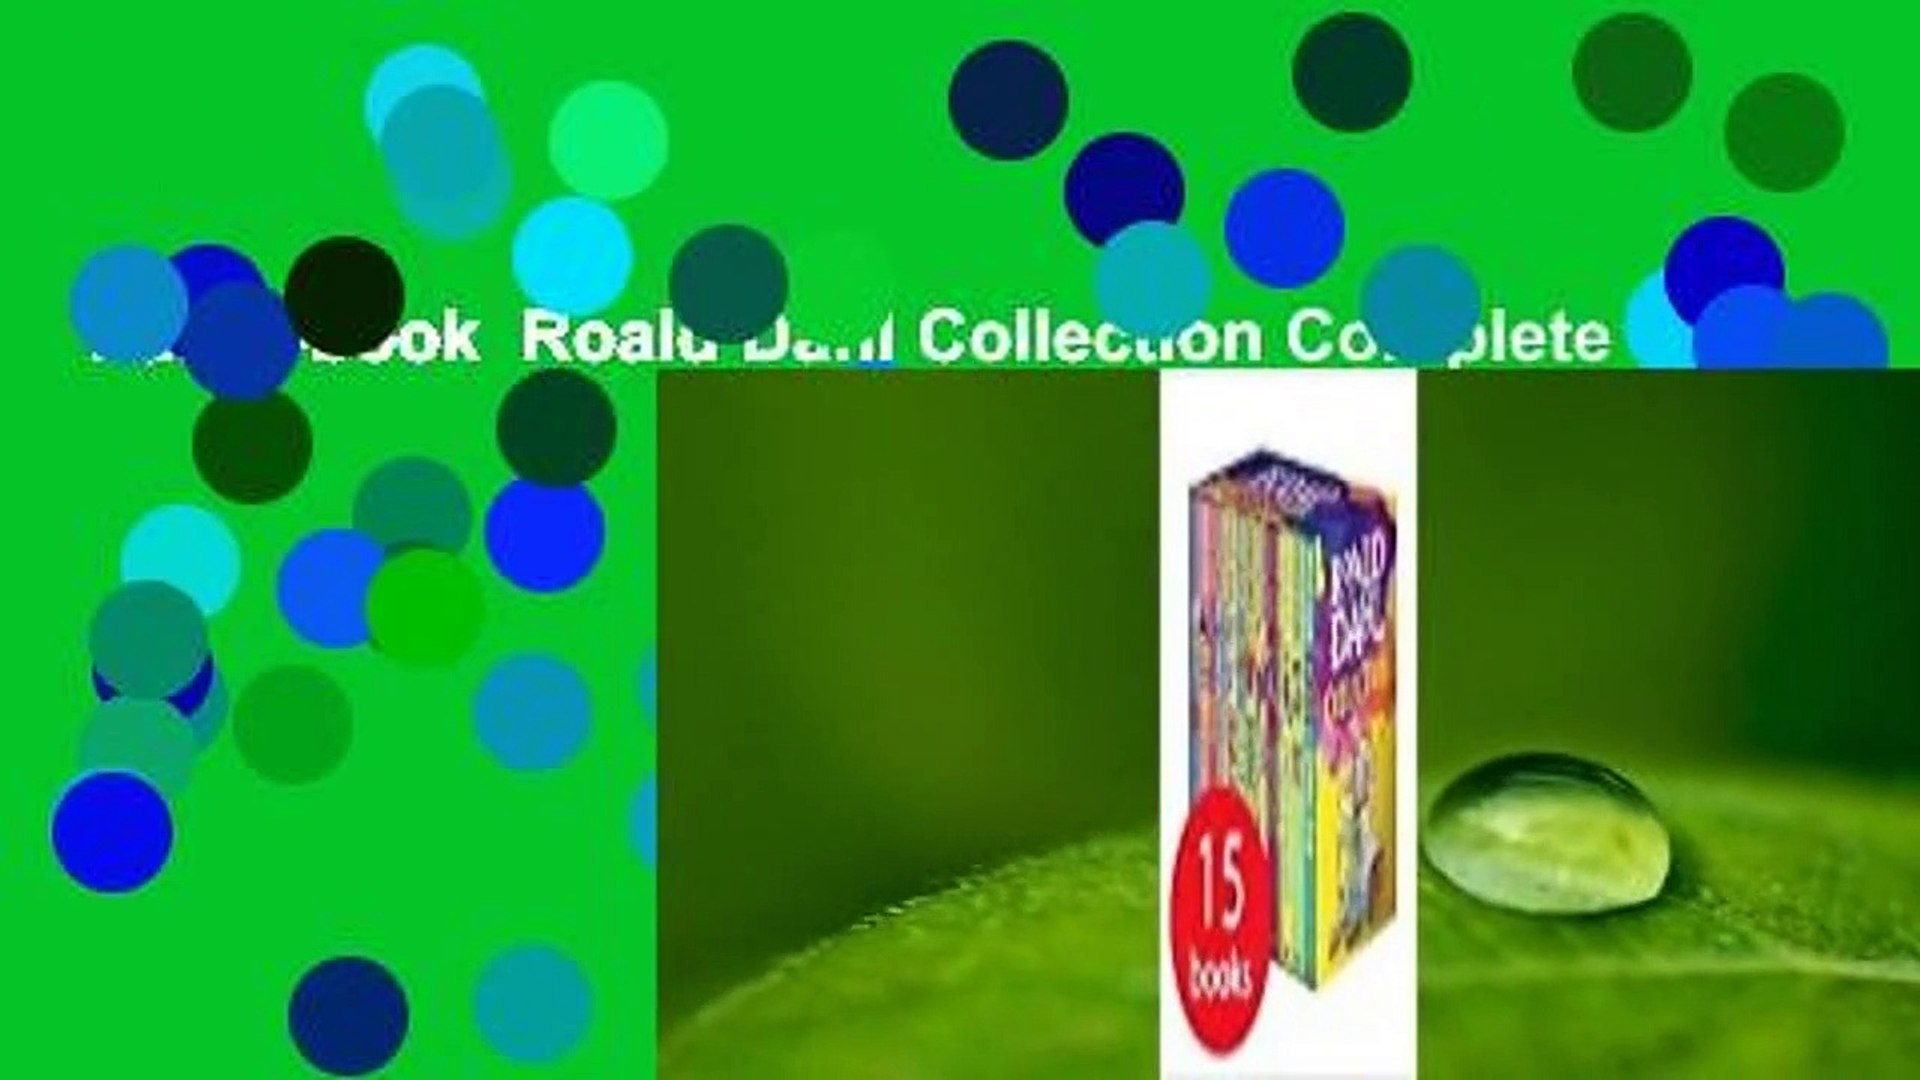 Full E Book Roald Dahl Collection Complete Video Dailymotion